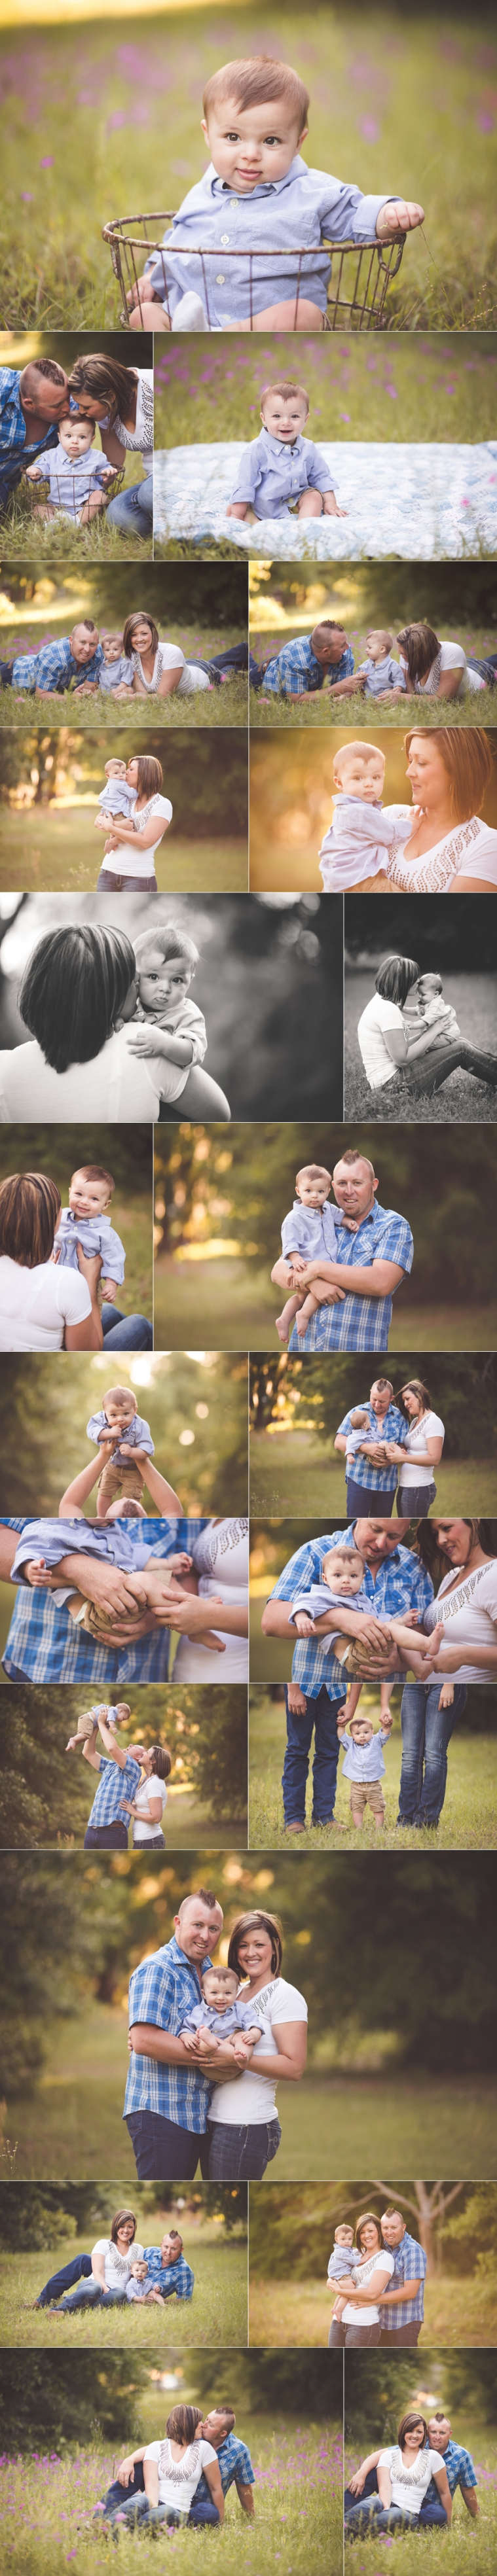 Orlando family photographer session 6 month old